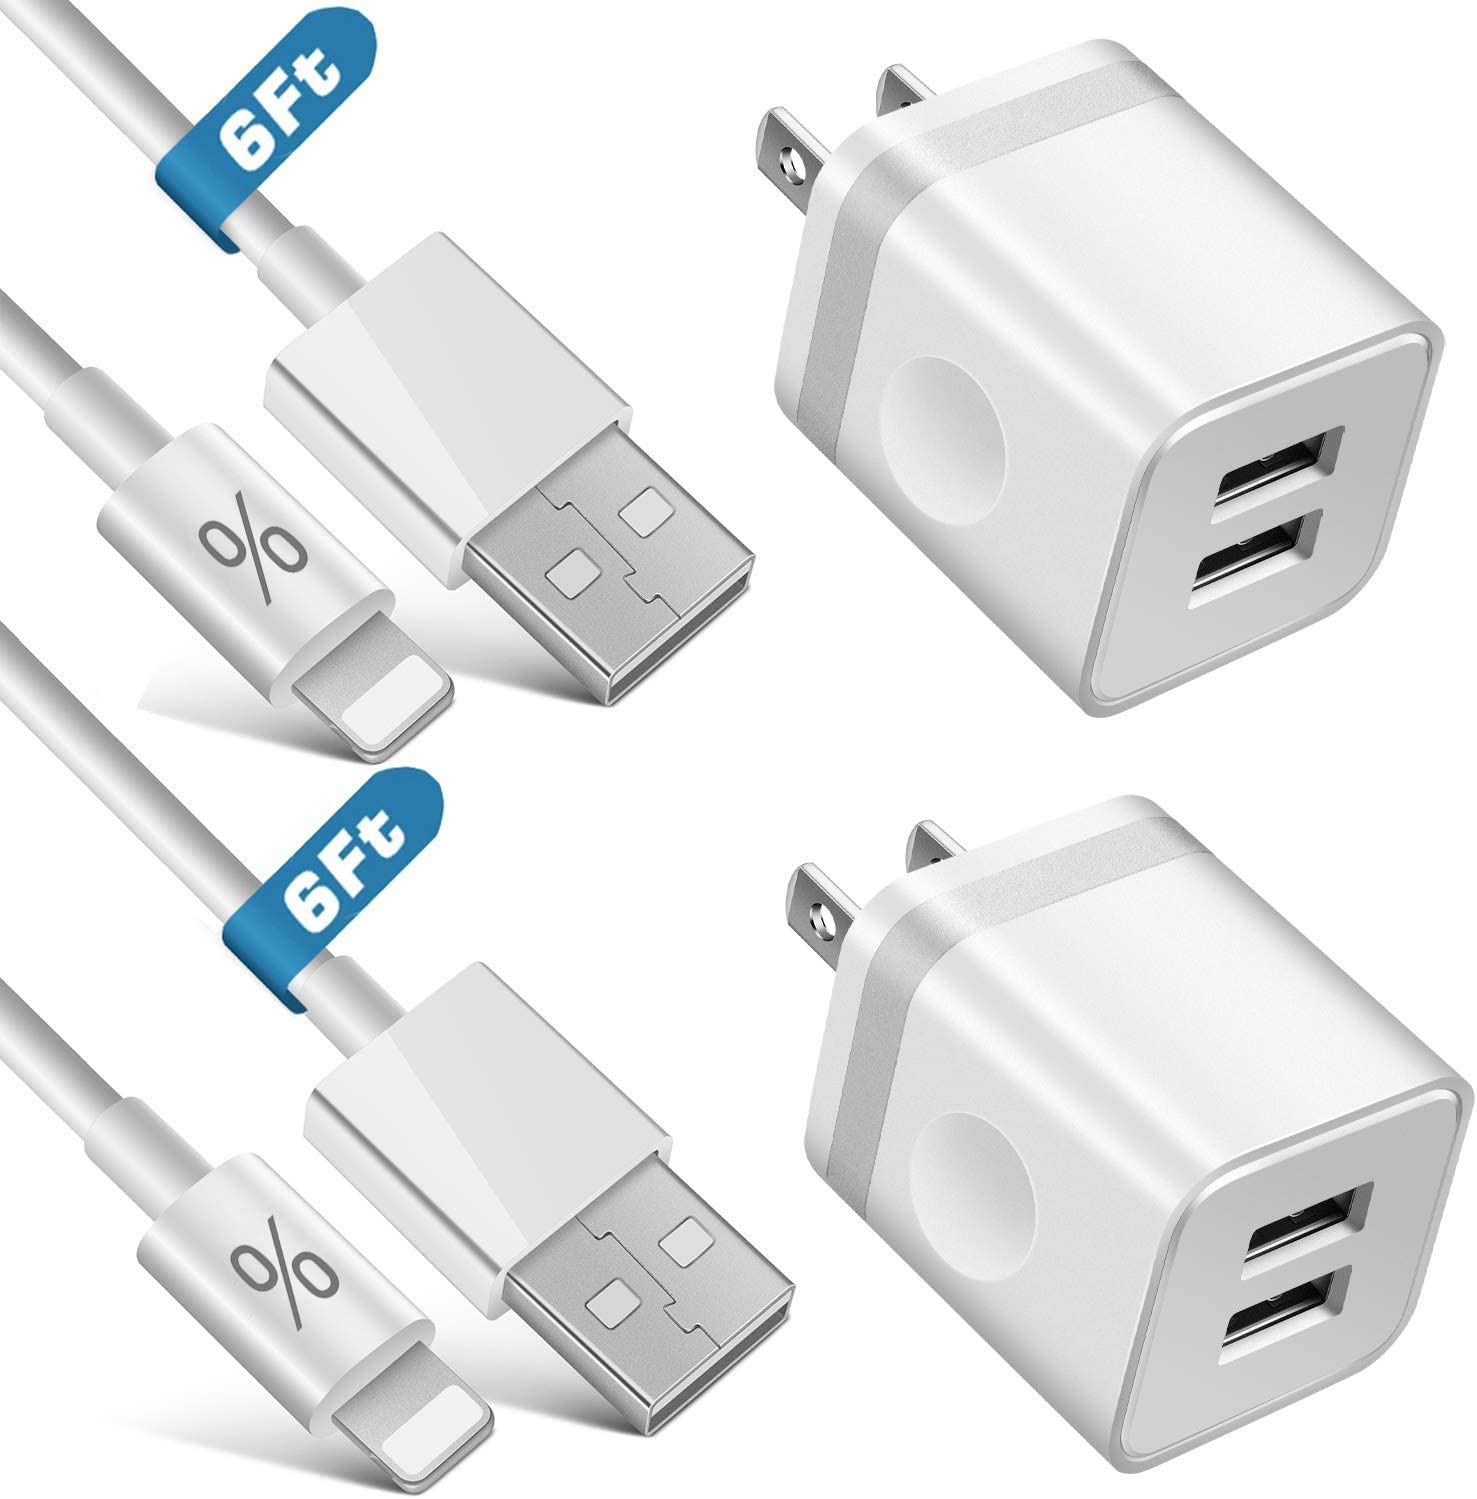 LUOSIKE iPhone Charger, 2-Pack 6Ft Long Lightning Data/Sync Fast Charging Cable with 2-Pack Dual USB Wall Charger Plug Block Compatible with iPhone 11 /Pro Max /SE2 /XR/XS Max/X, 8/7/6S Plus, iPad